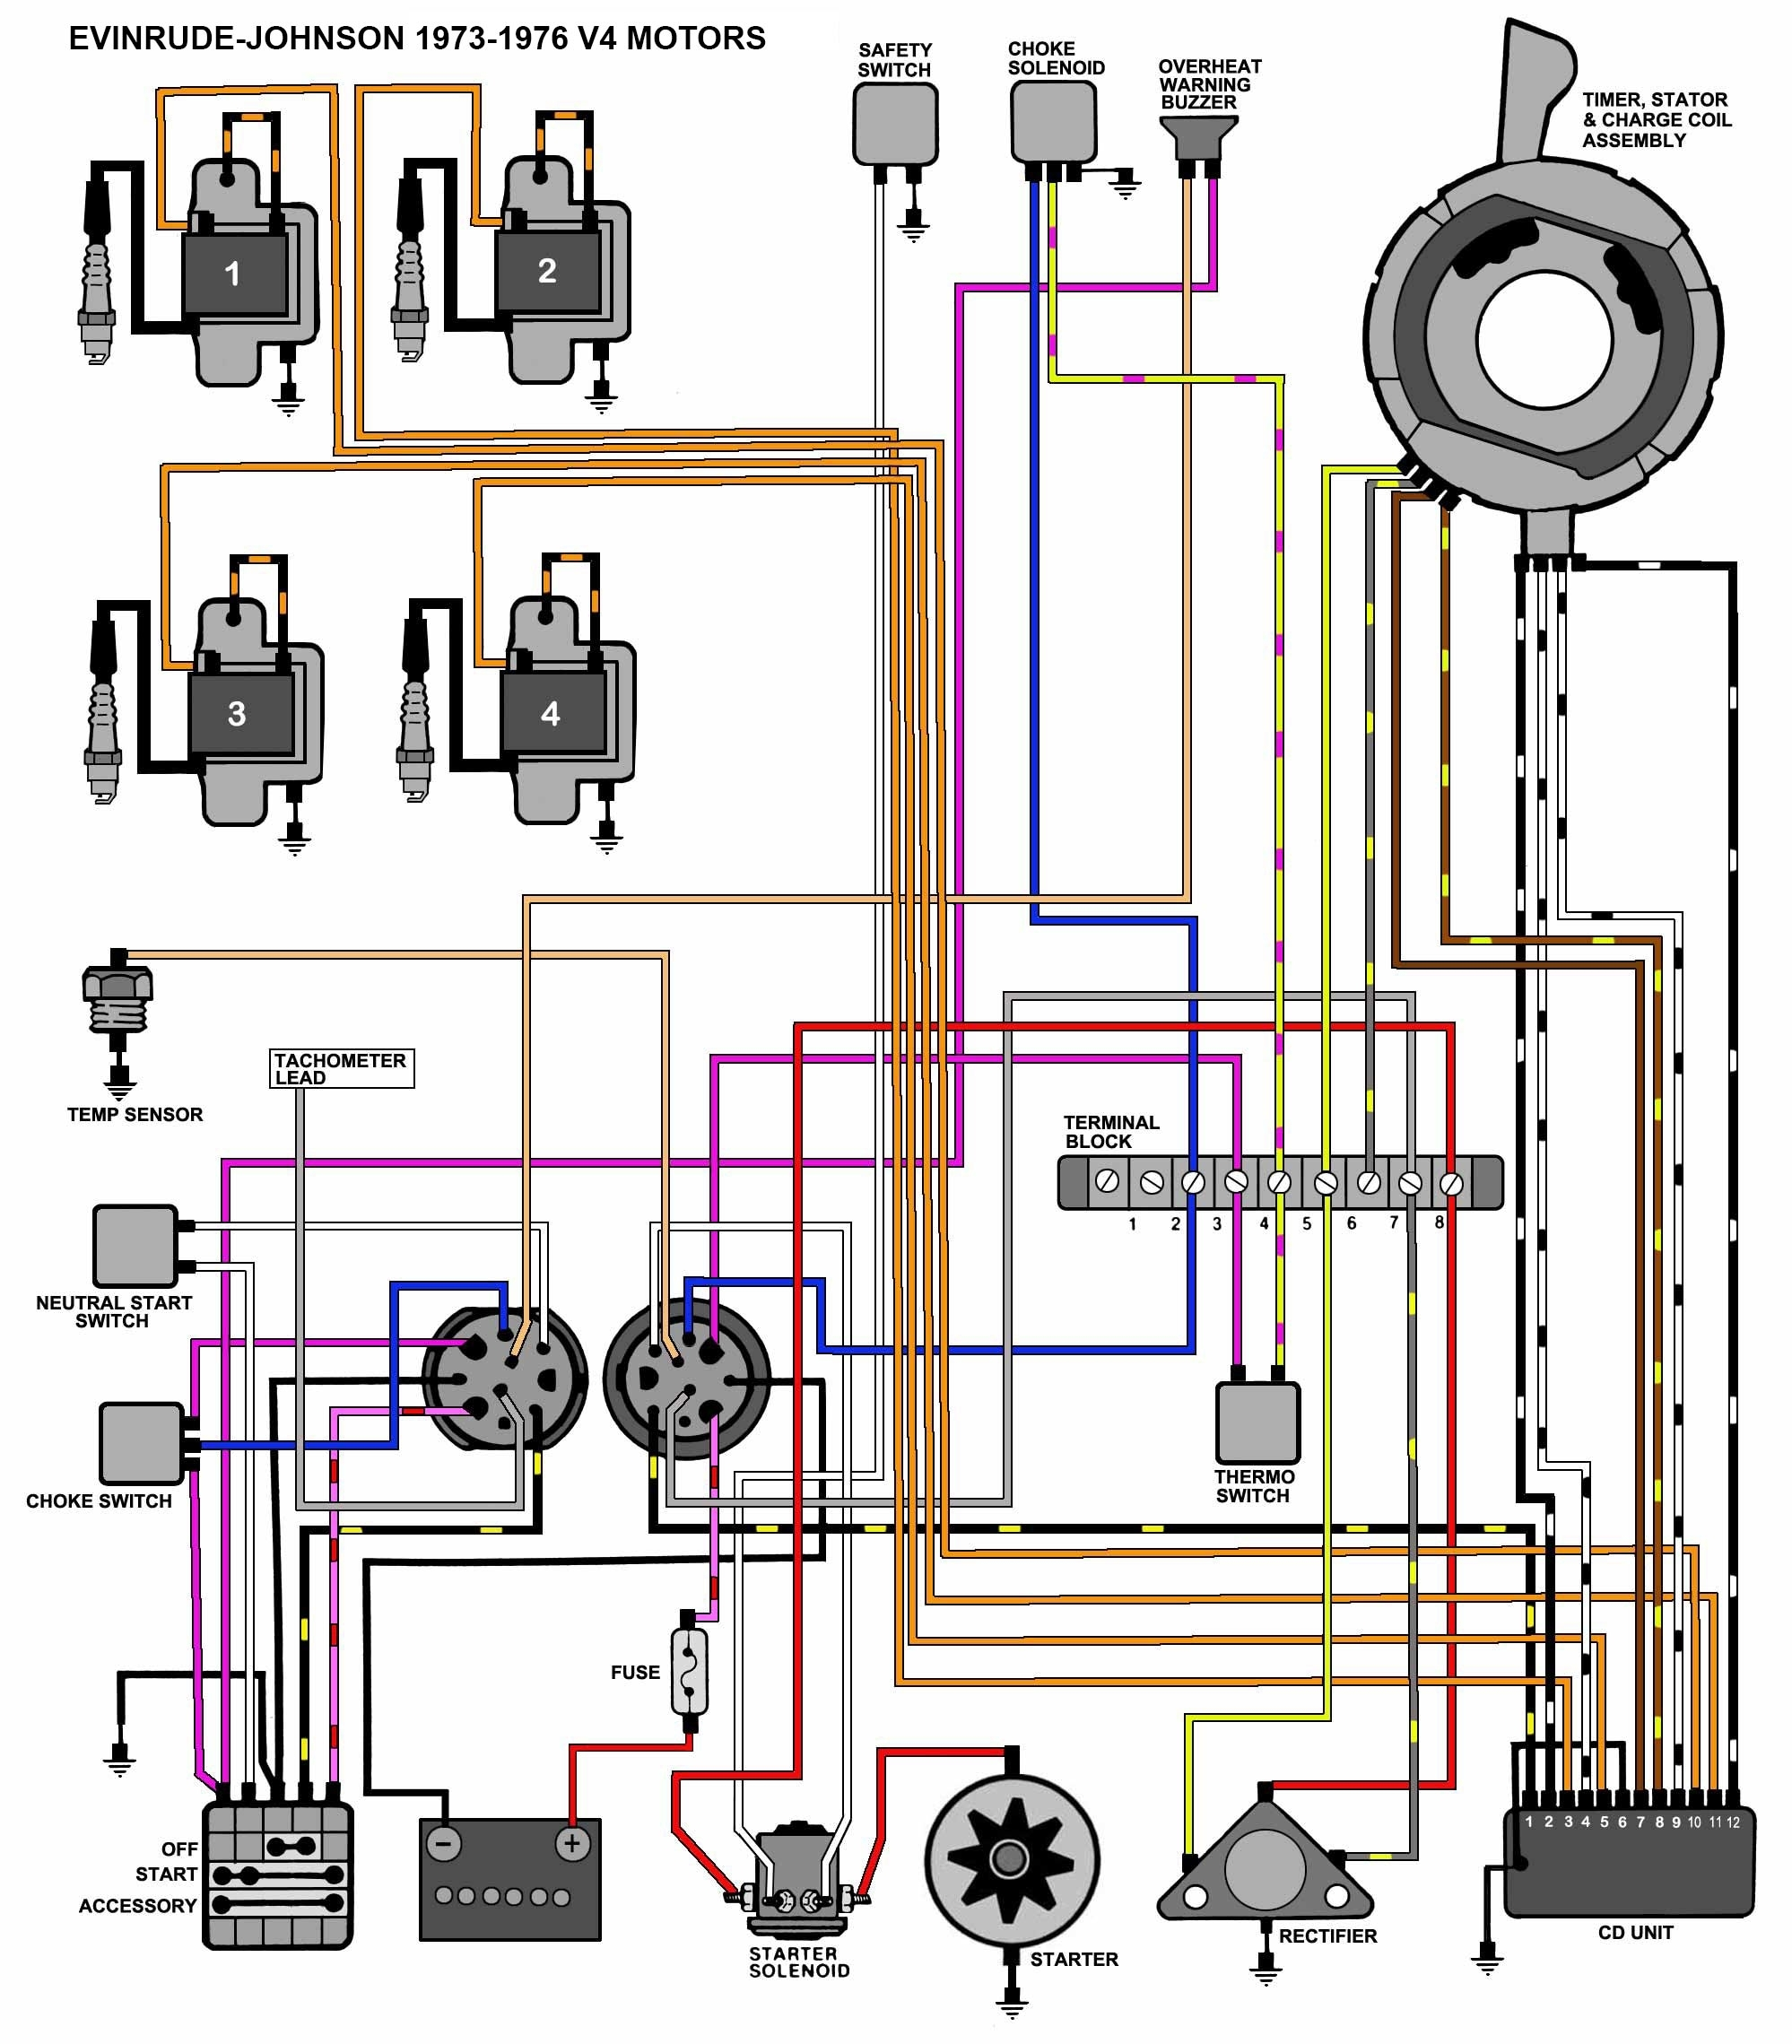 [WQZT_9871]  AAC4 Chris Craft Ignition Wiring Diagram | Wiring Resources | Wiring Diagram Starcraft Boat |  | Wiring Resources